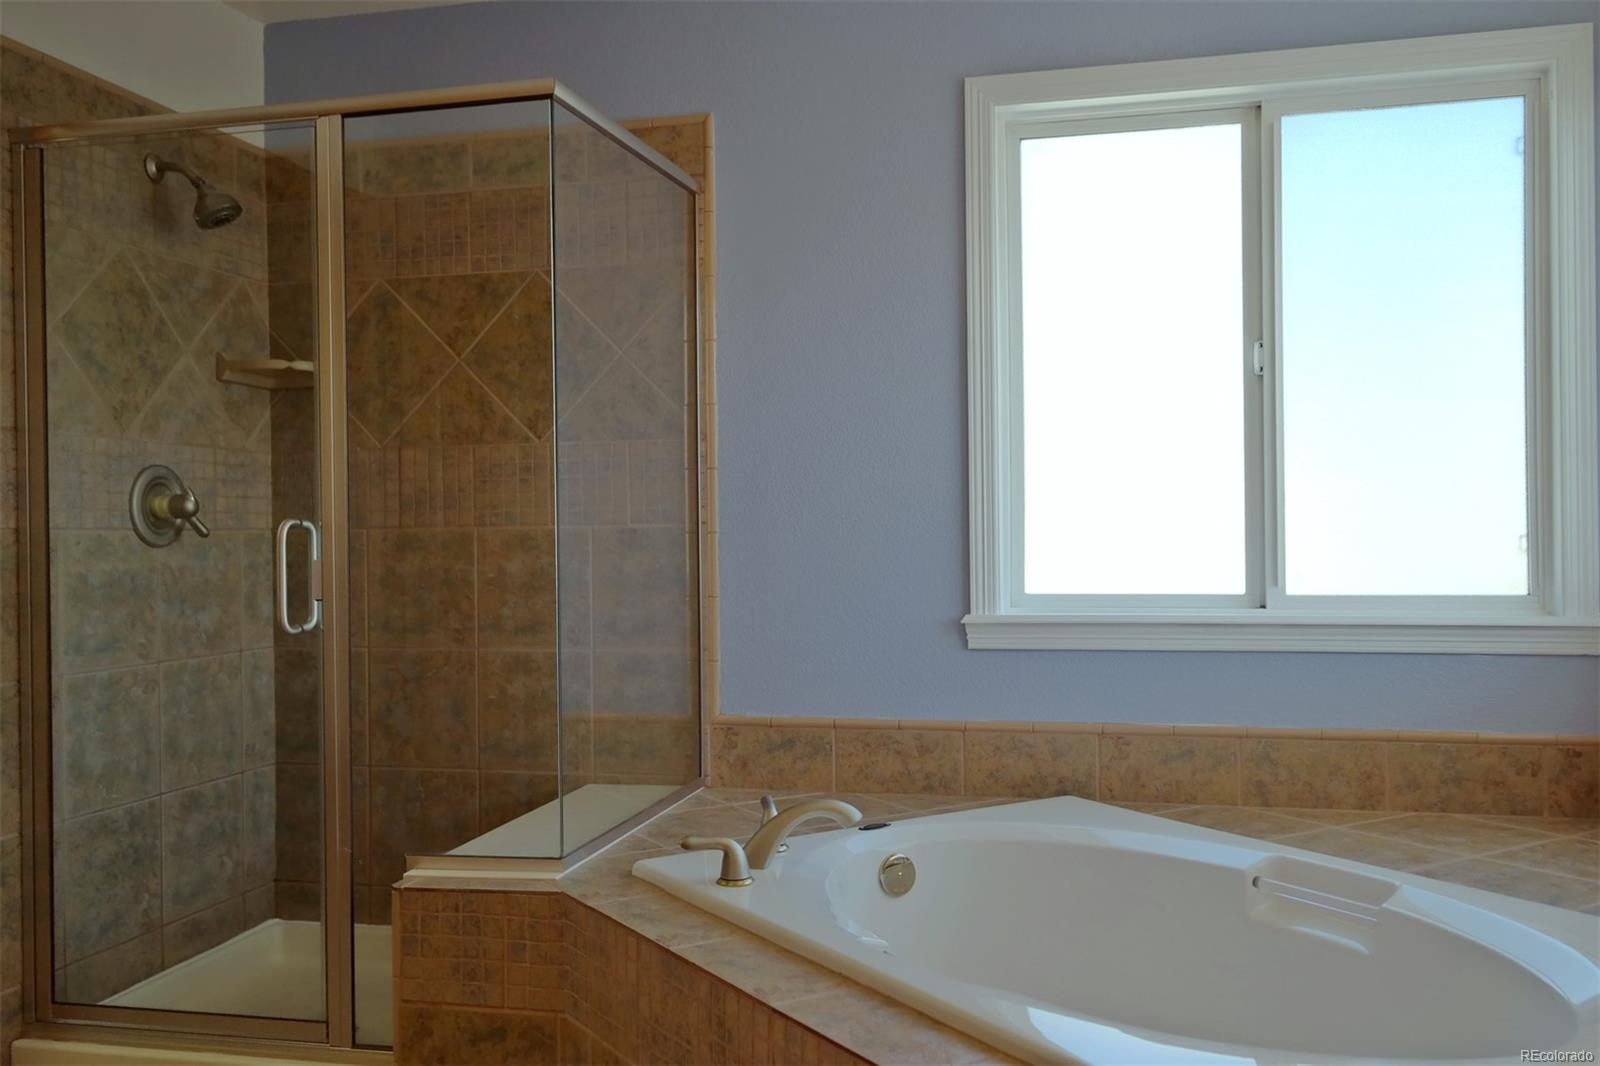 Attractive Tile & New Shower Glass in Master